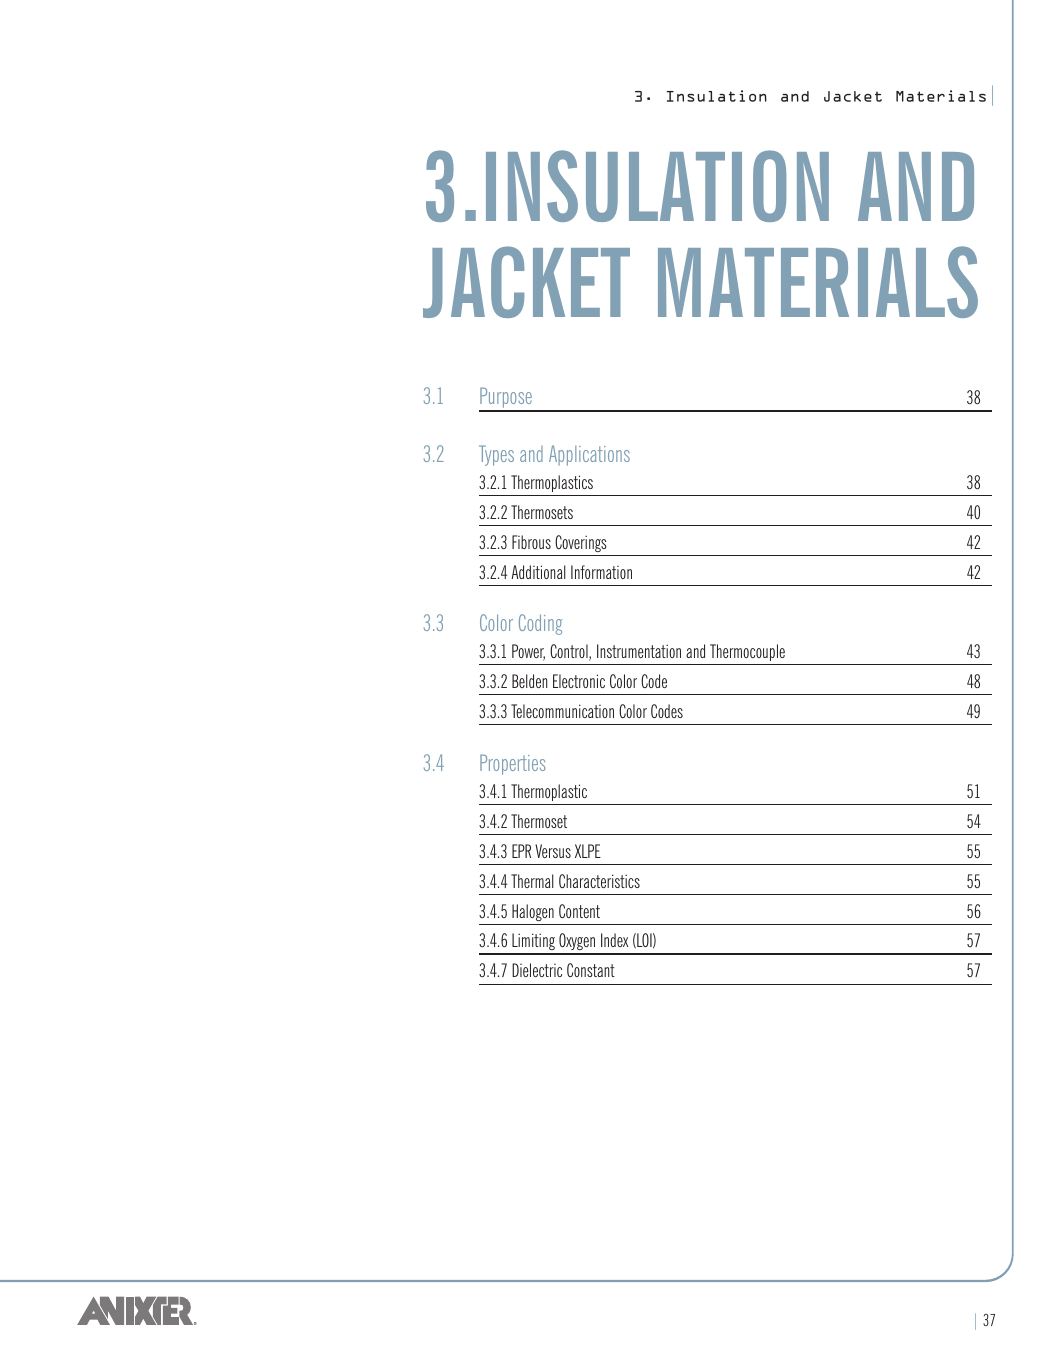 Insulation: types, characteristics, purpose and use 39